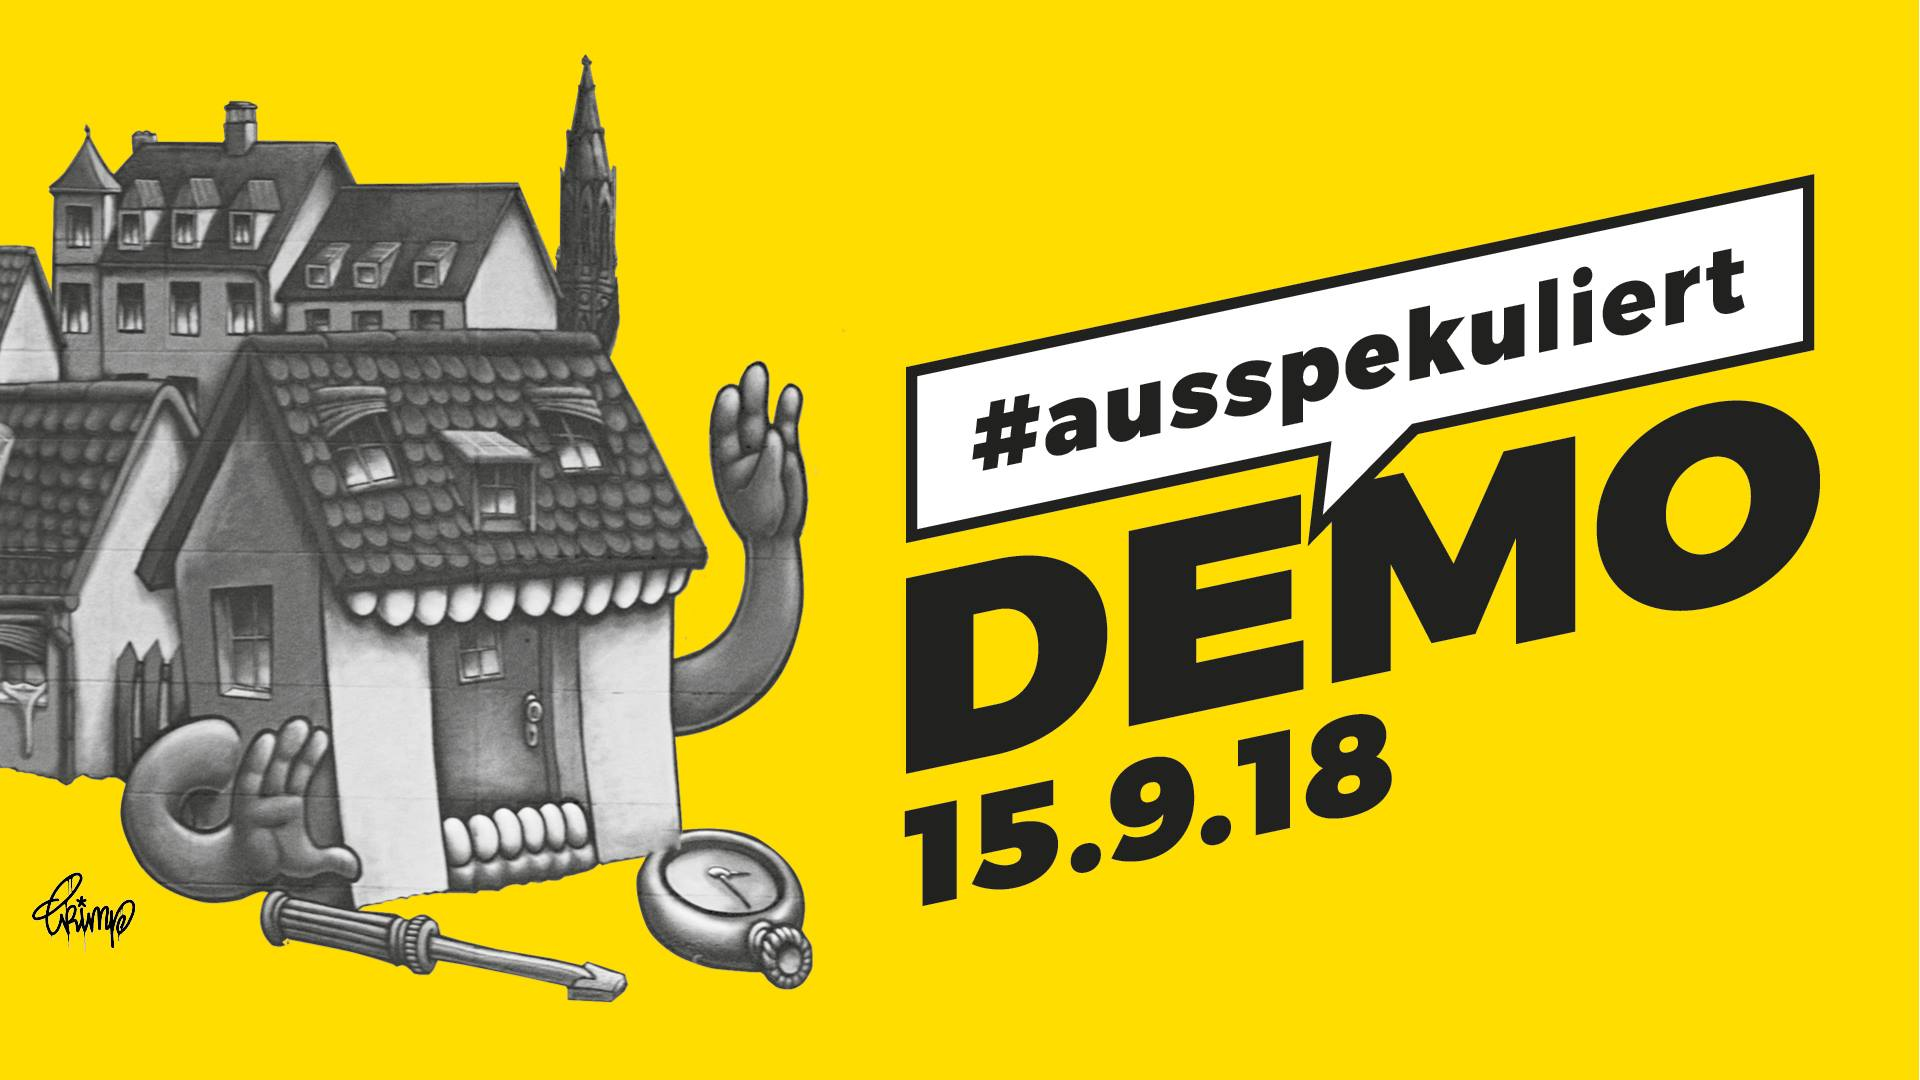 15. September: #ausspekuliert Demo